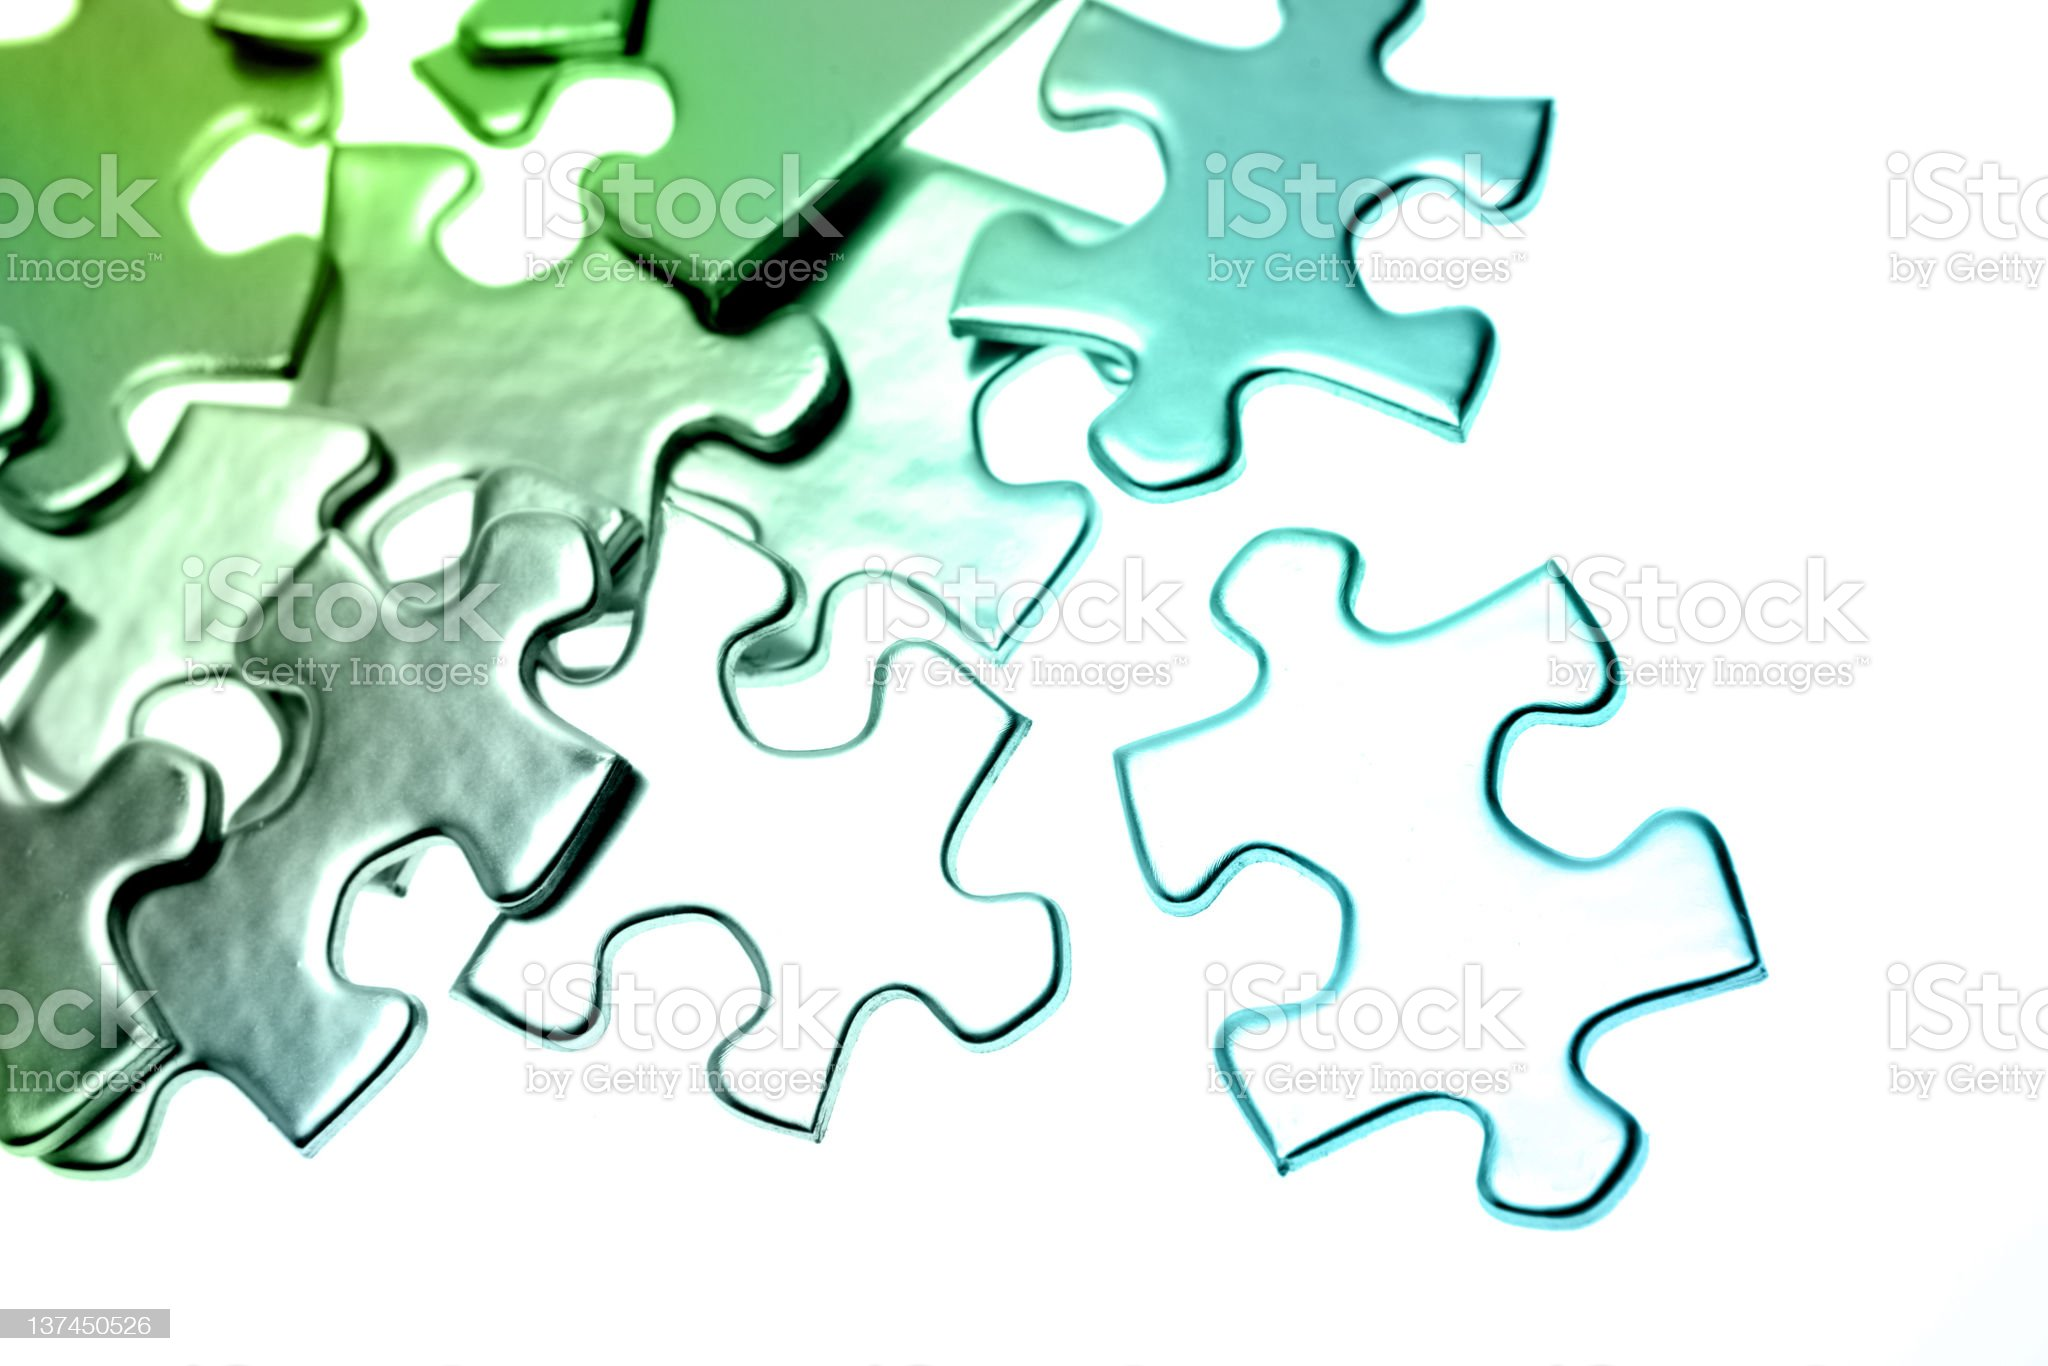 Puzzle pieces royalty-free stock photo